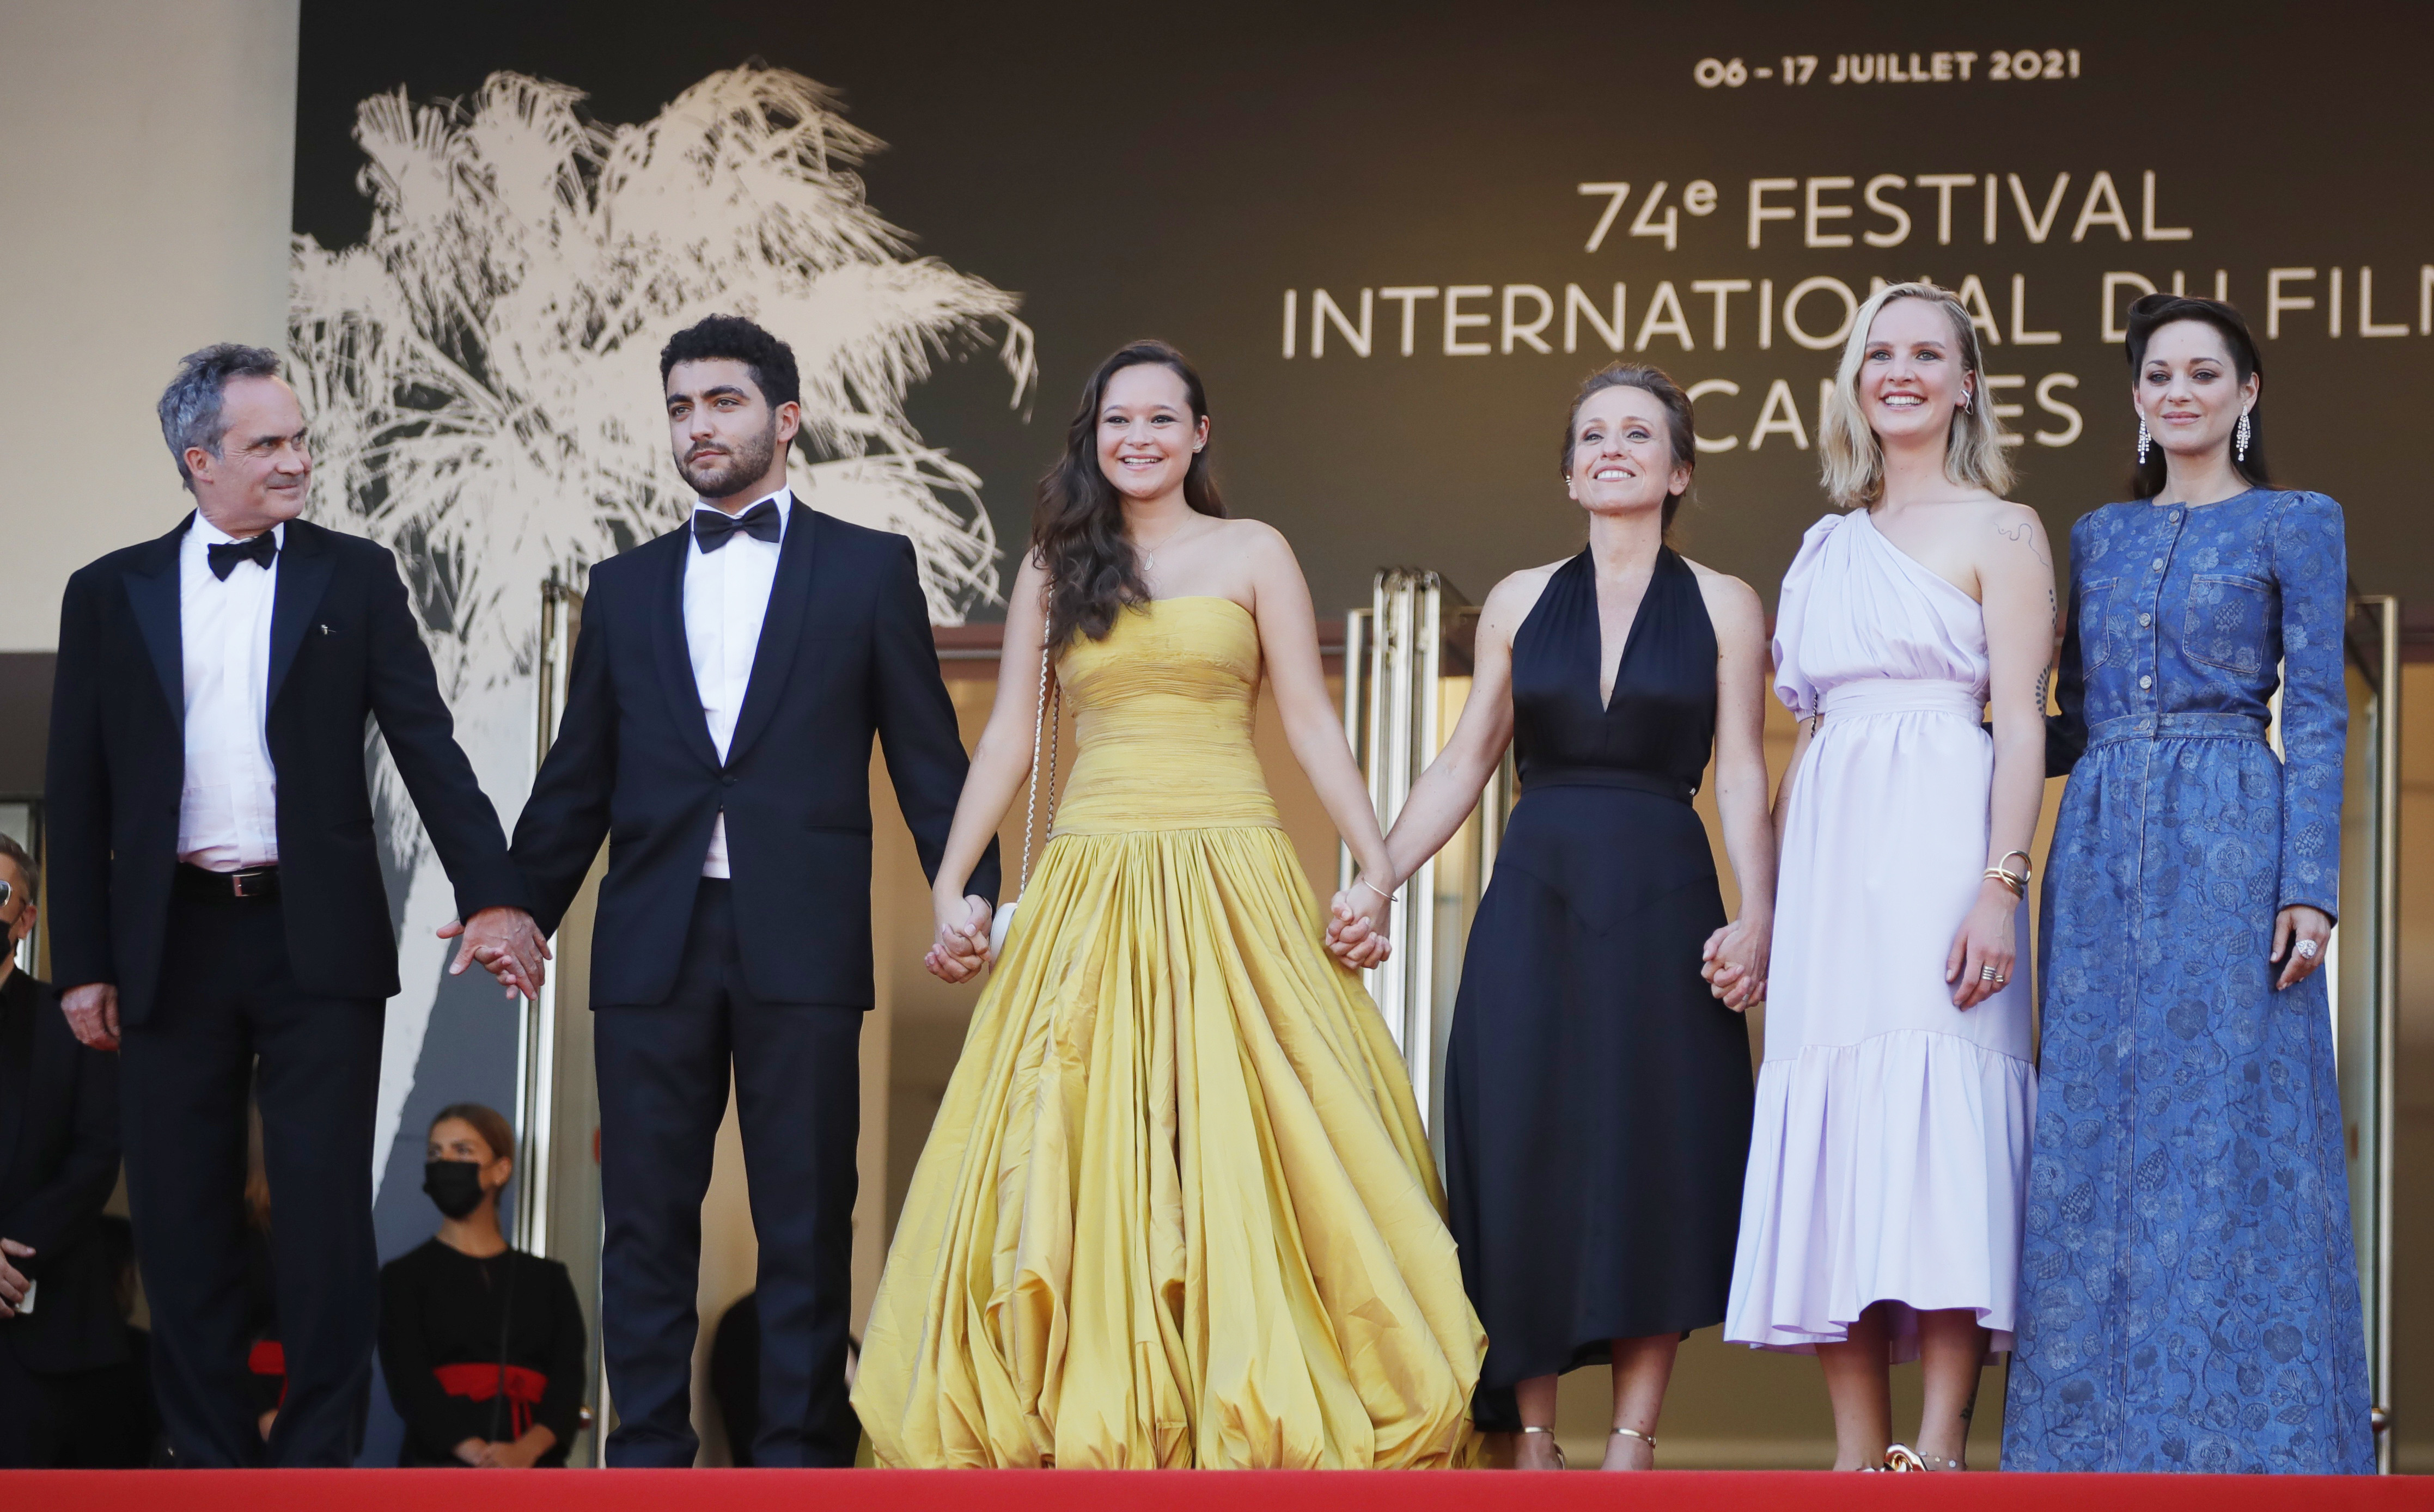 """the 74th Cannes Film Festival - screening of the film """"Bigger Than Us"""" presented as part of Cinema for the Climate - Red Carpet Arrivals - Cannes, France, July 10, 2021. Marion Cotillard, Mary Finn, Flore Vasseur, Melati Wijsen, Mohamad Aljounde and Denis Carot can be seen posing"""